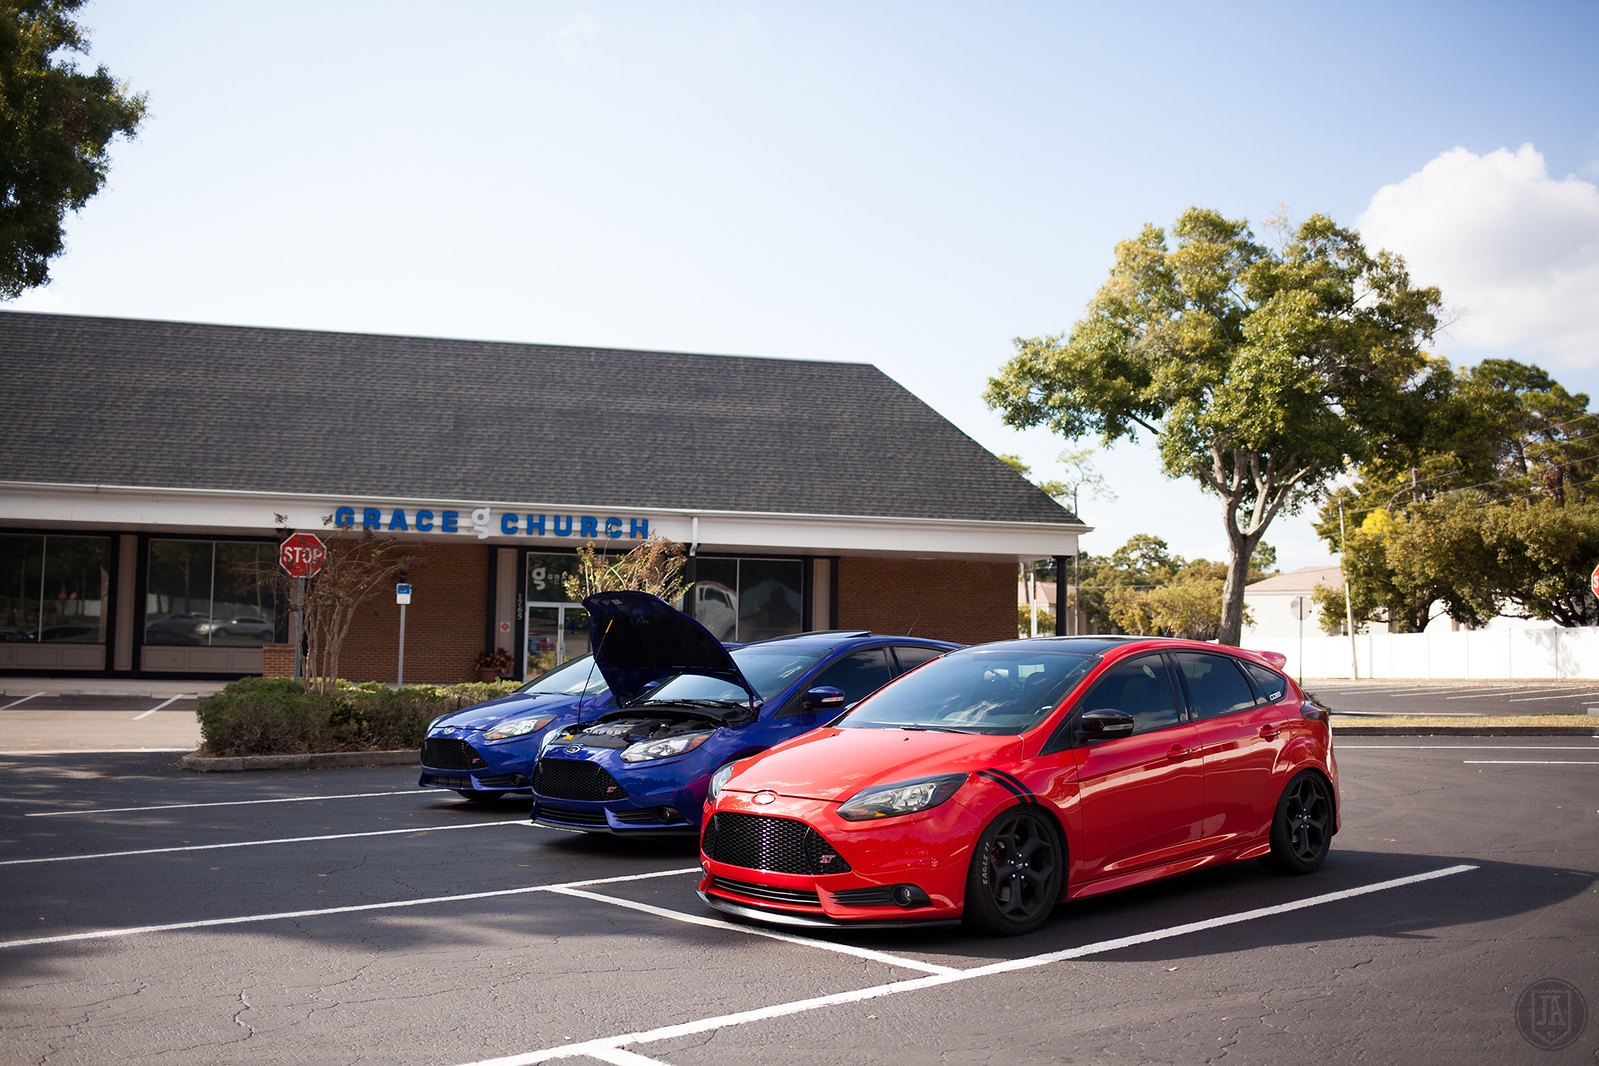 central florida st meet up 4 rivers smokehouse in longwood on